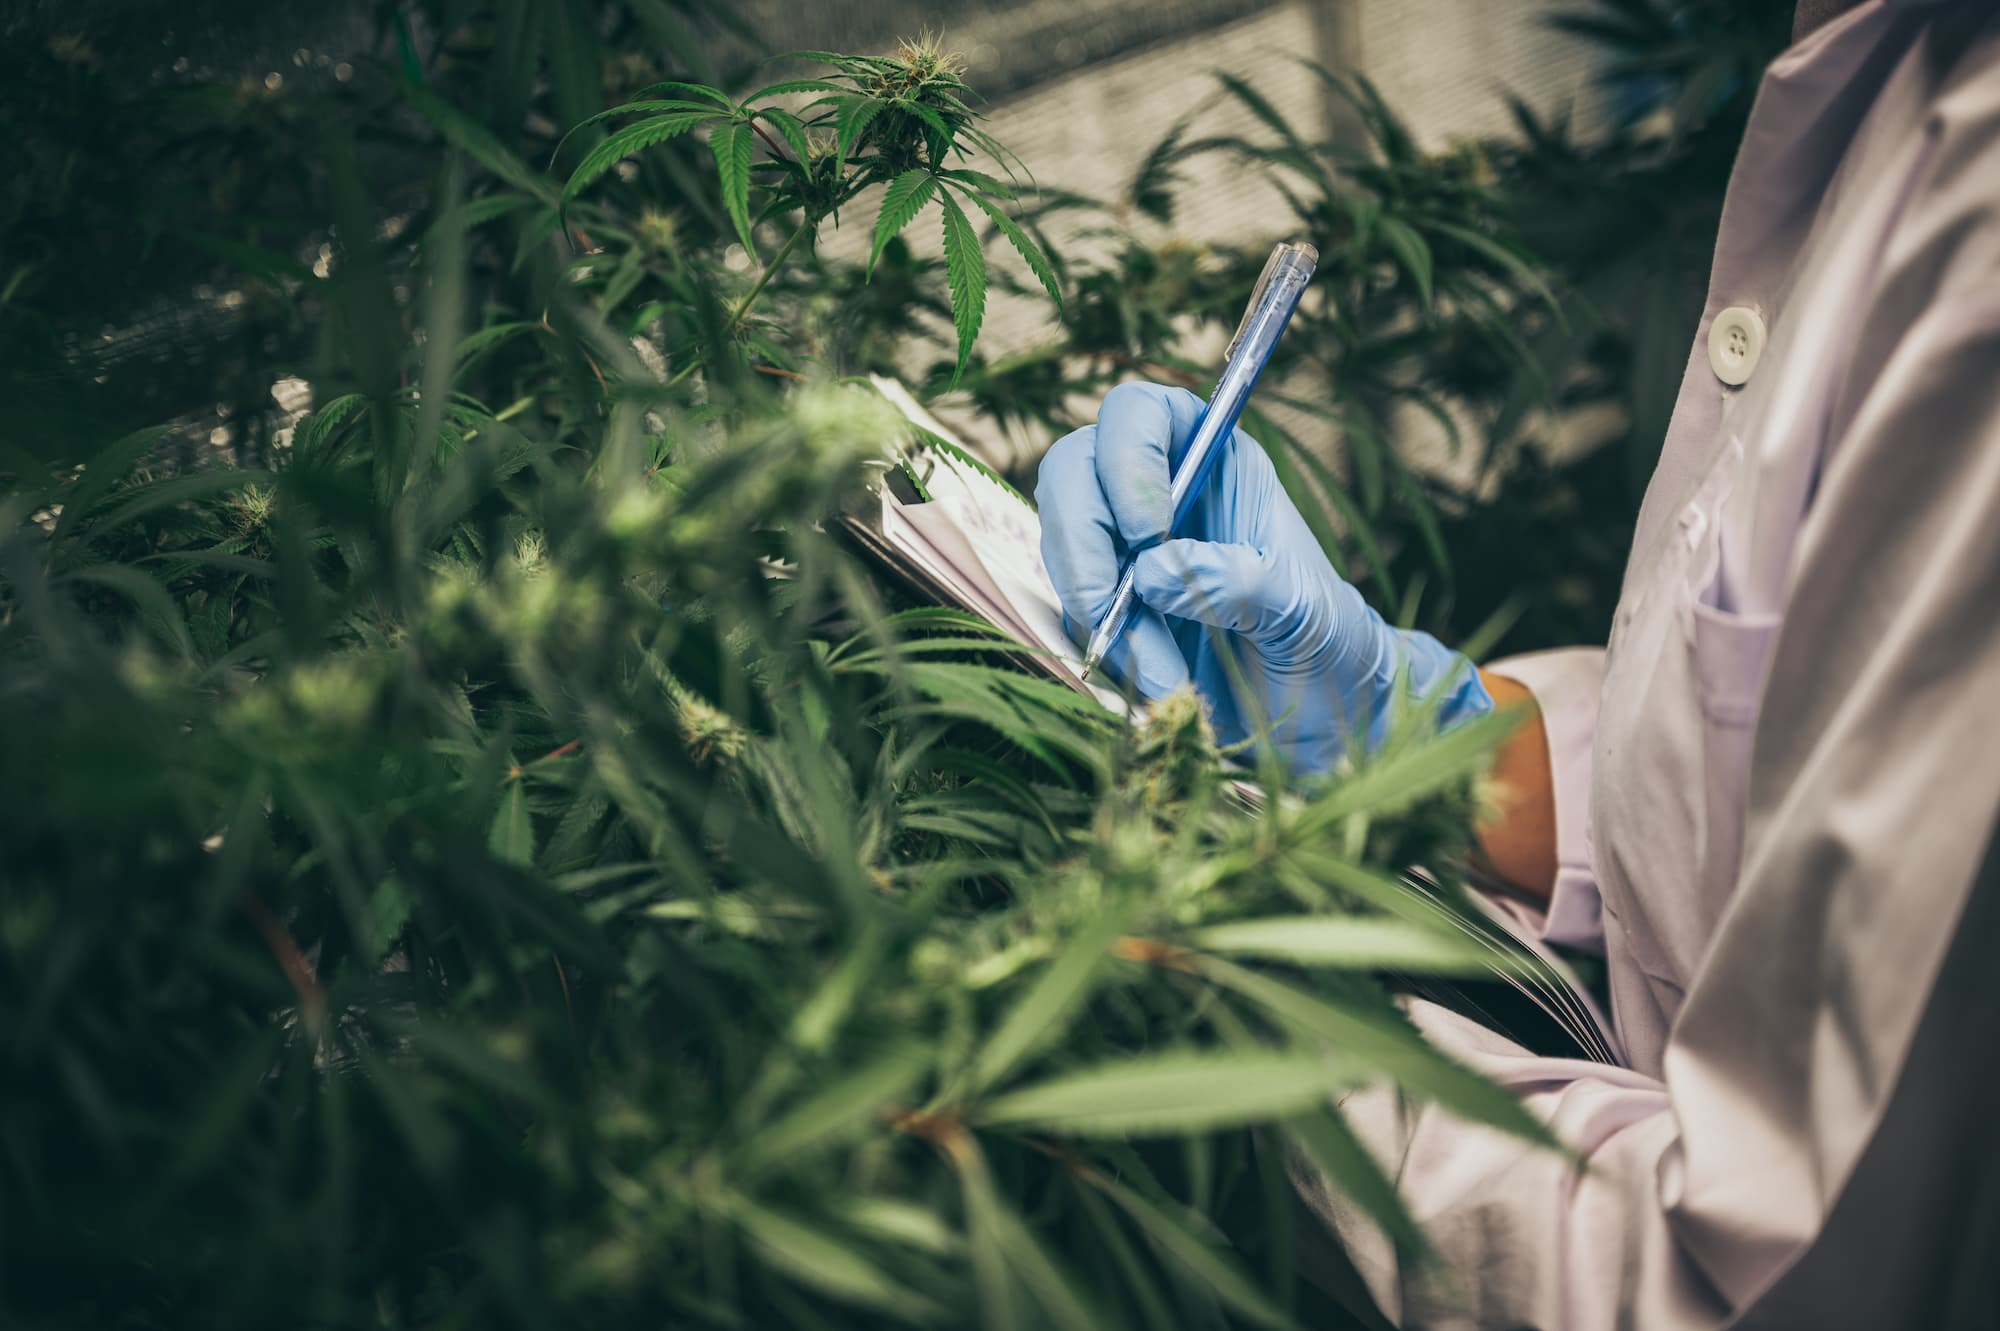 A Cannabis Operator's Guide to Writing a Business Plan